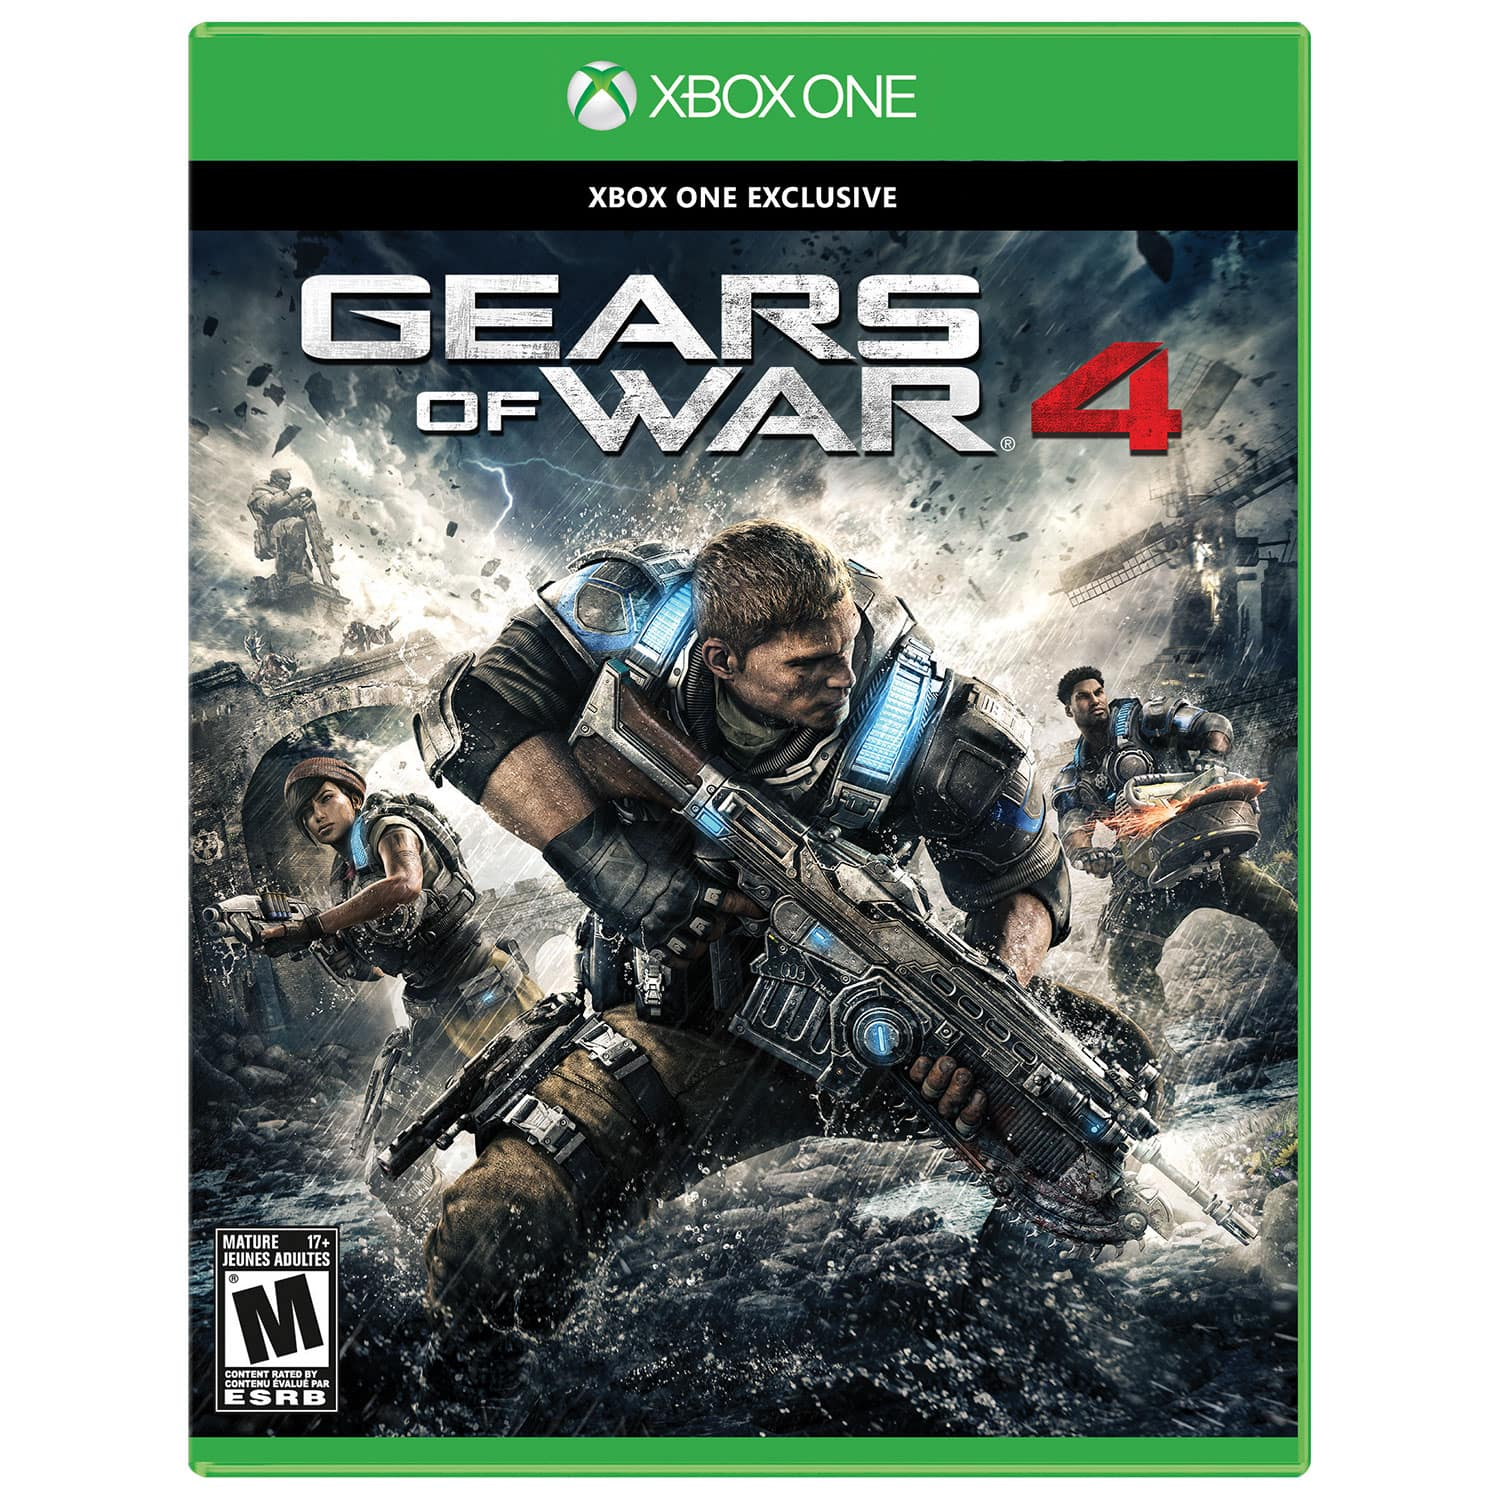 Gears of War 4 Xbox One - $20.99